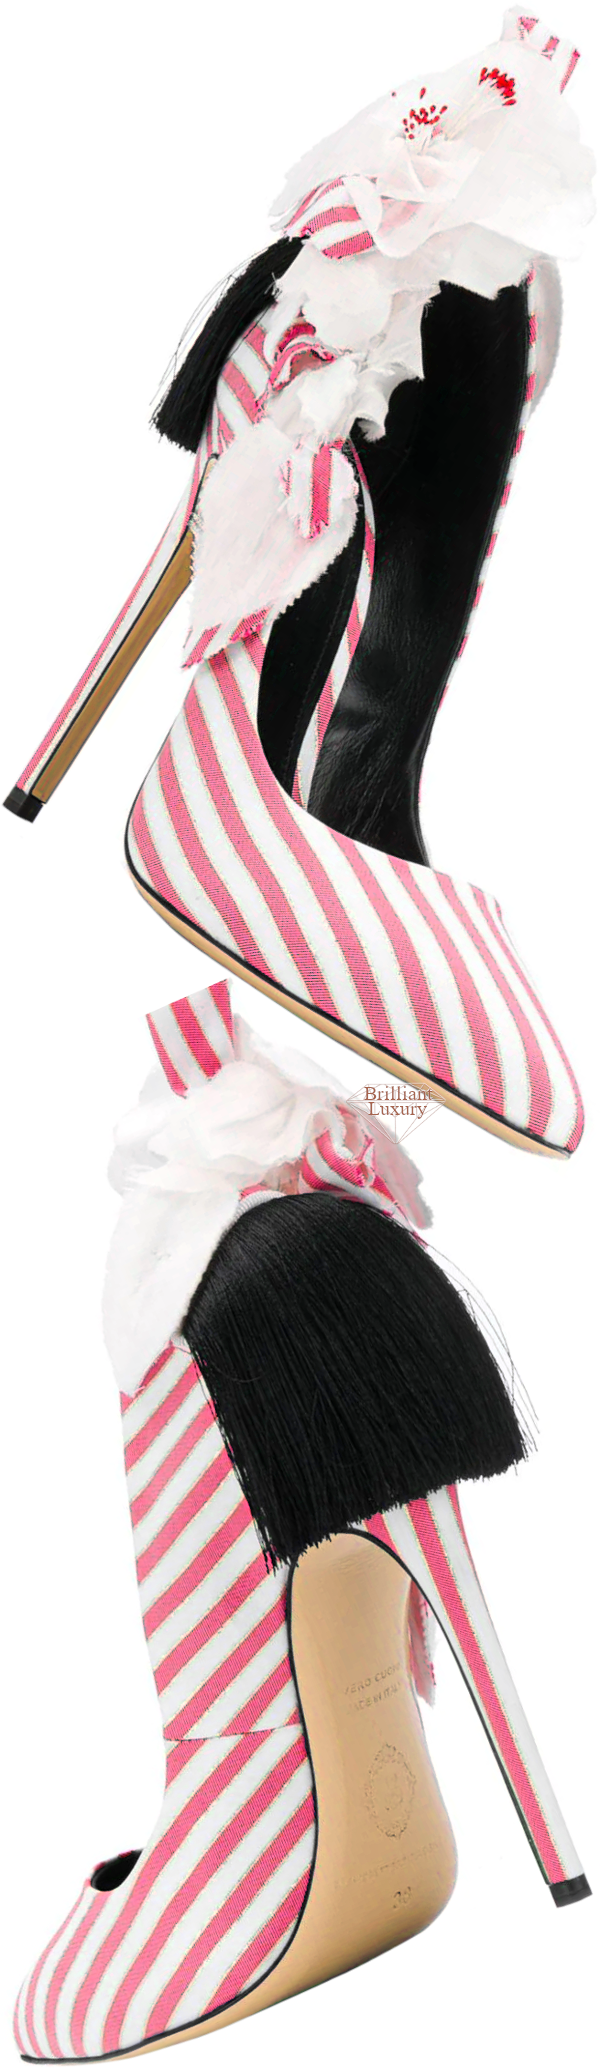 pink striped appliqué detail pump #brilliantluxury